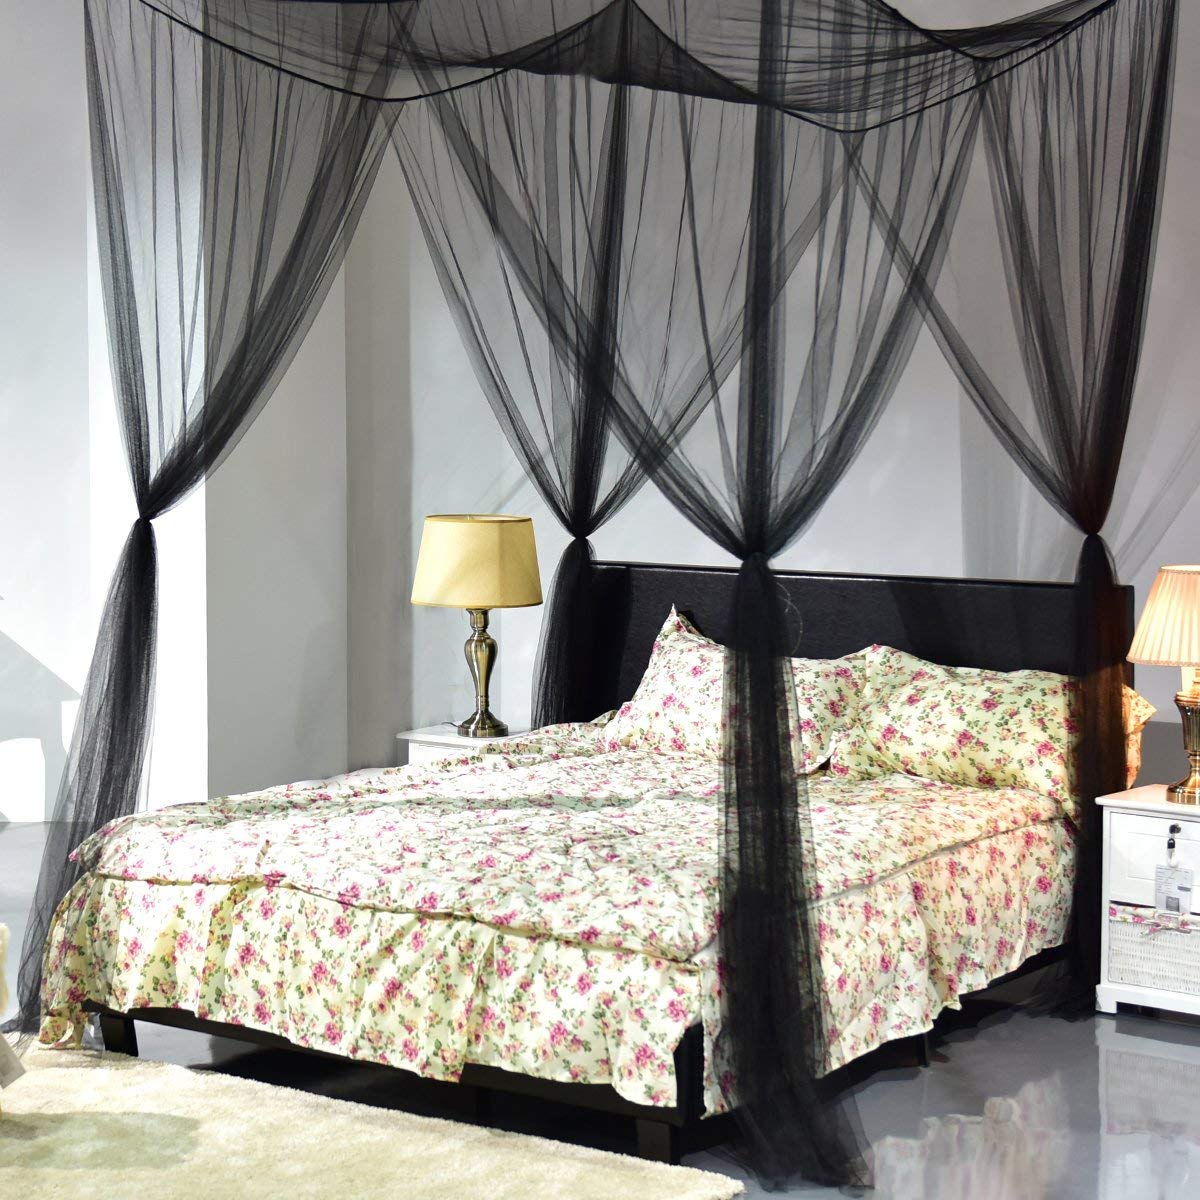 Amazon.com Goplus 4 Corner Post Bed Canopy Mosquito Net Full Queen King Size Netting Bedding Home u0026 Kitchen : fishnet canopy - afamca.org